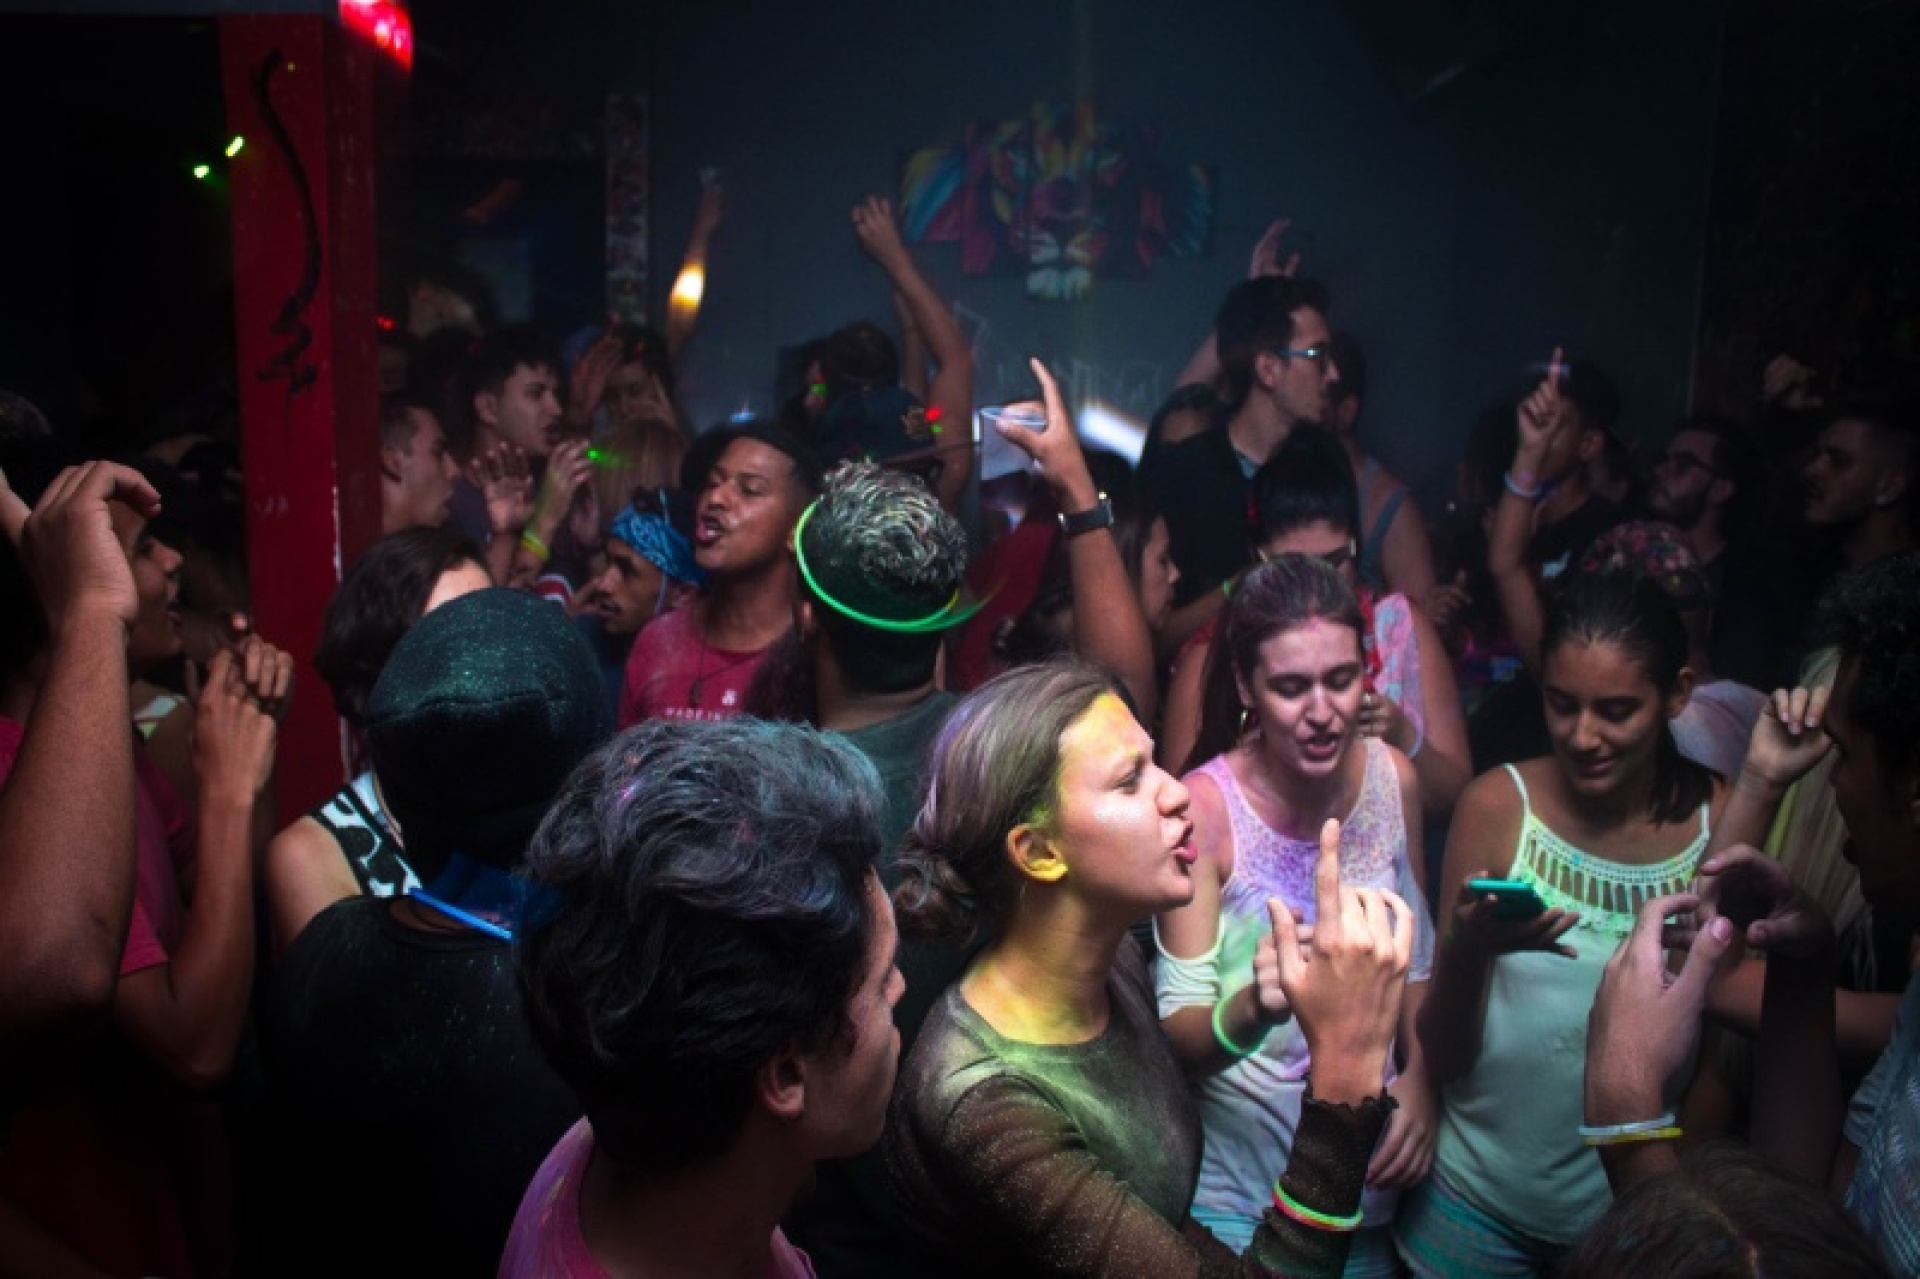 People partying in a club in Athens